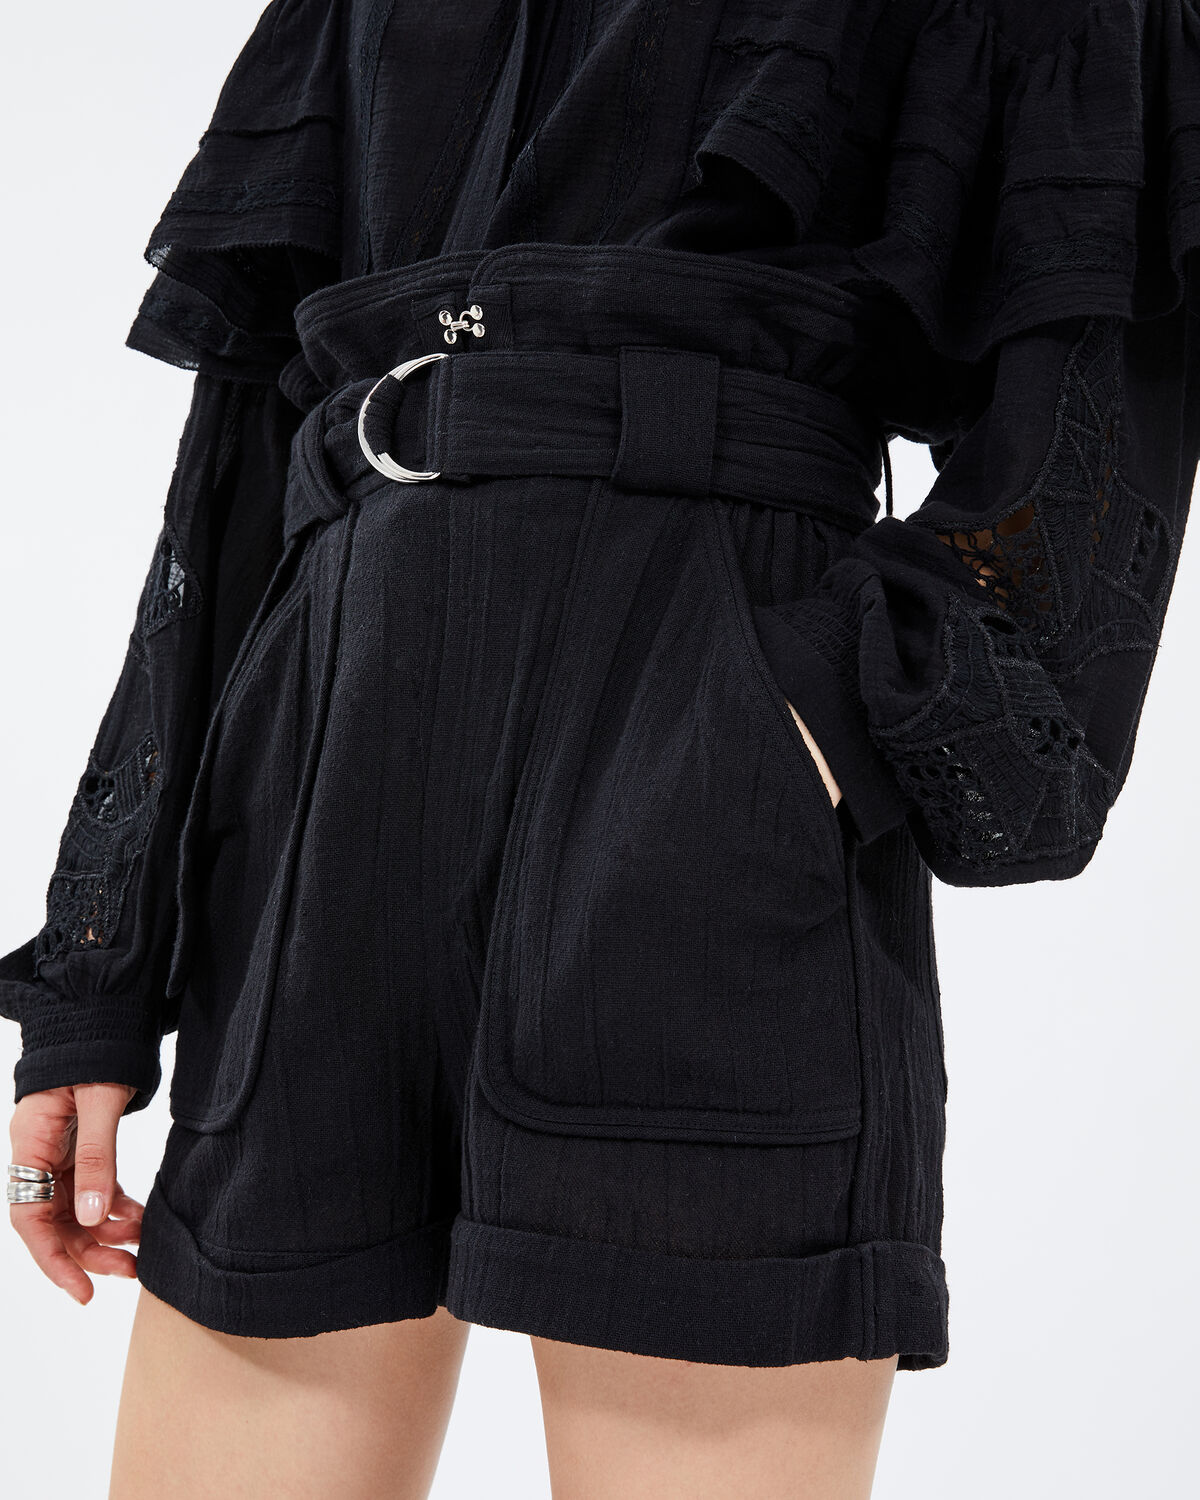 IRO - LUX SHORTS BLACK